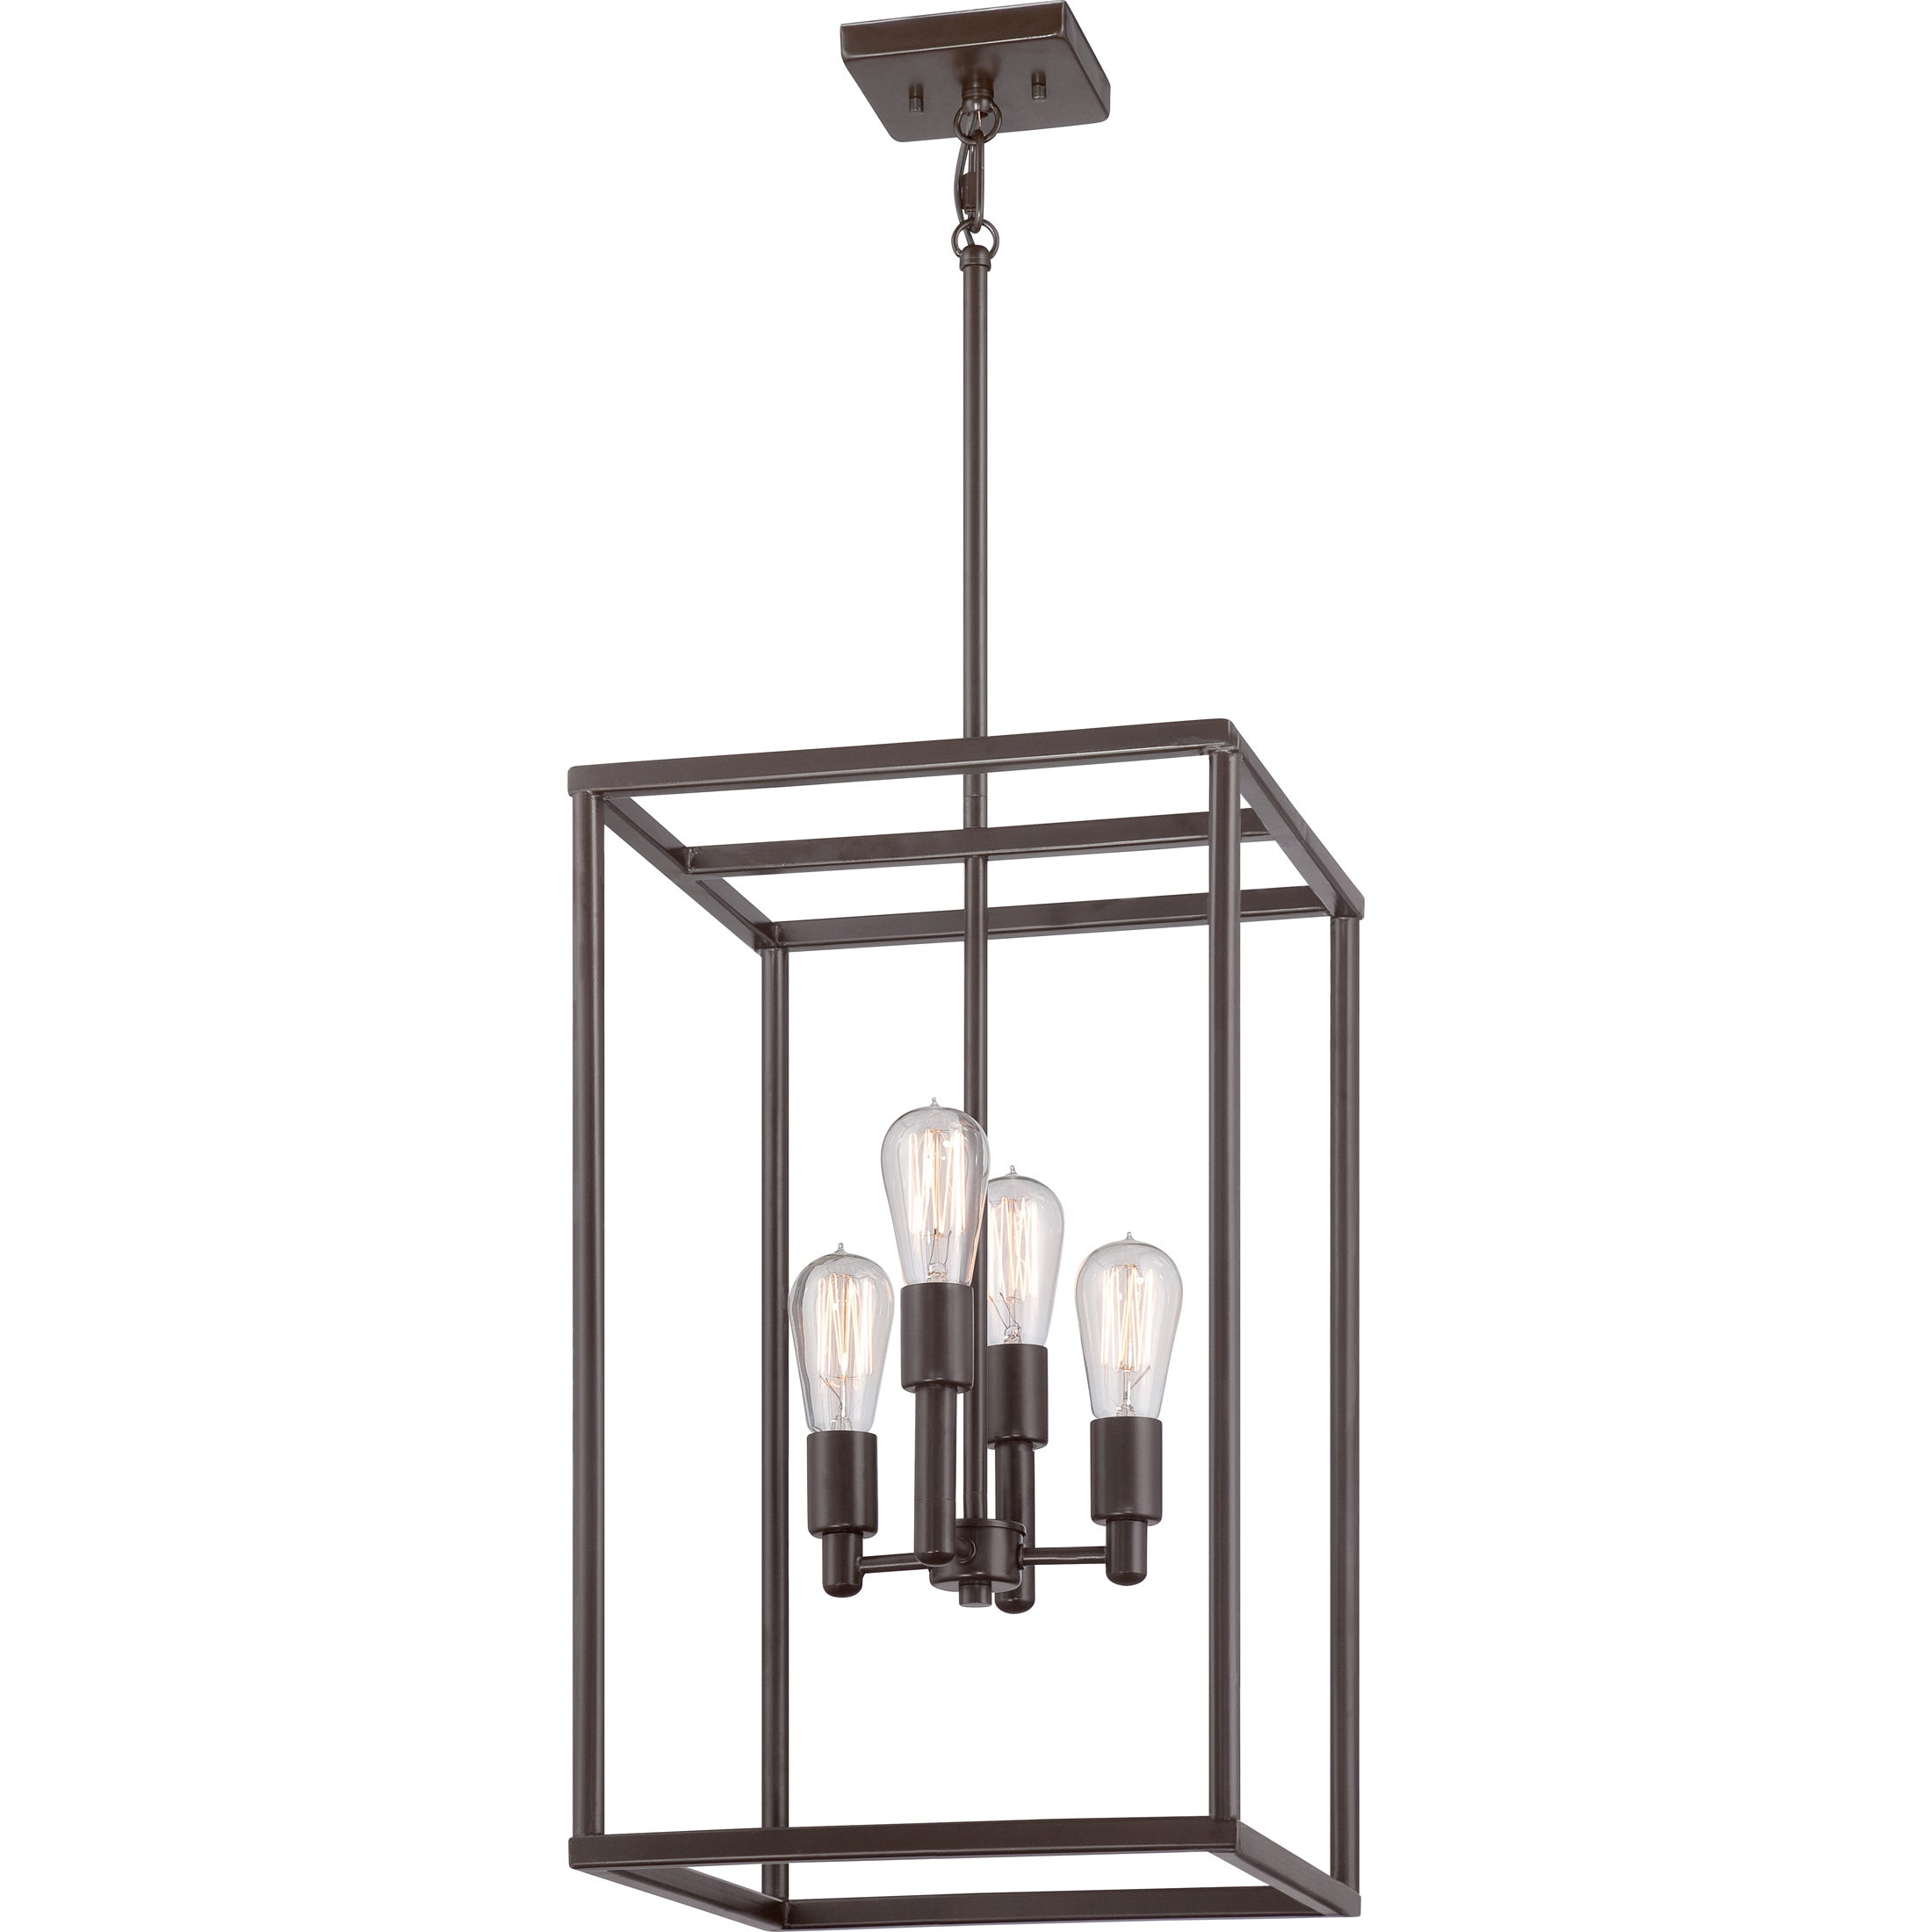 Quoizel new harbor 4 light western bronze cage chandelier free quoizel new harbor 4 light western bronze cage chandelier free shipping today overstock 16573299 arubaitofo Images